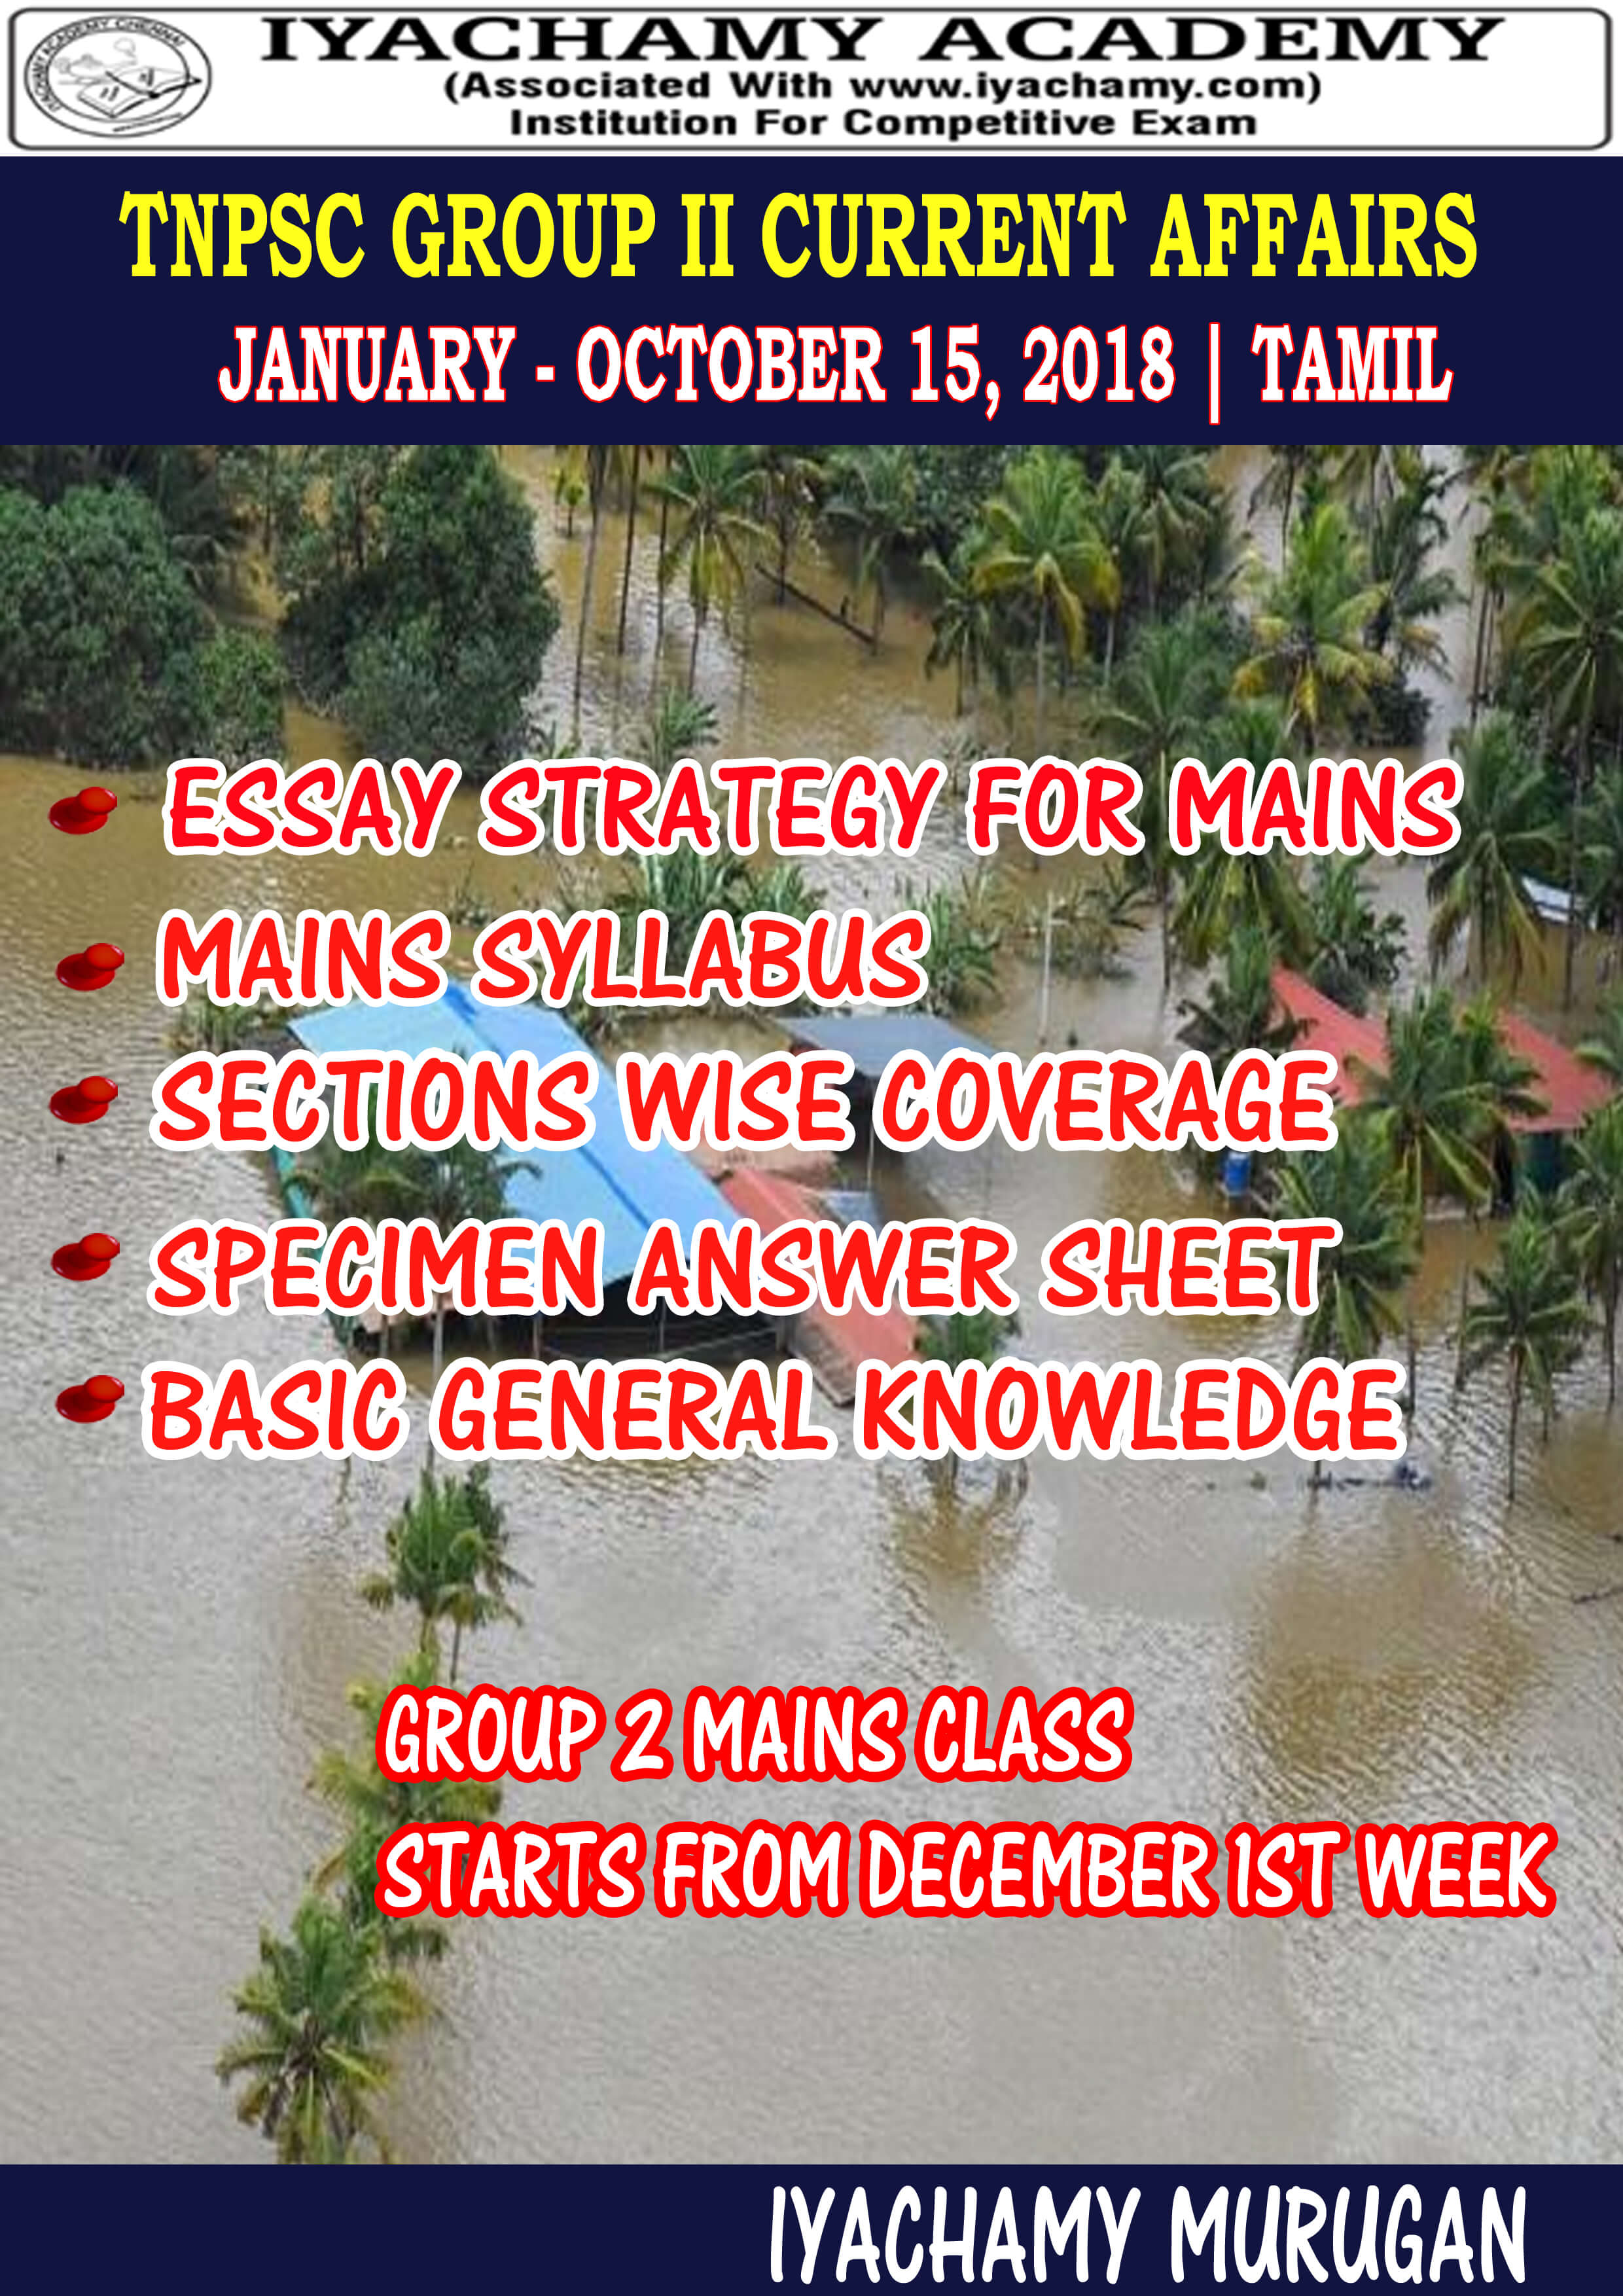 IYACHAMY CURRENT AFFAIRS TNPSC GROUP 2| JANUARY TO OCTOBER 15| TAMIL